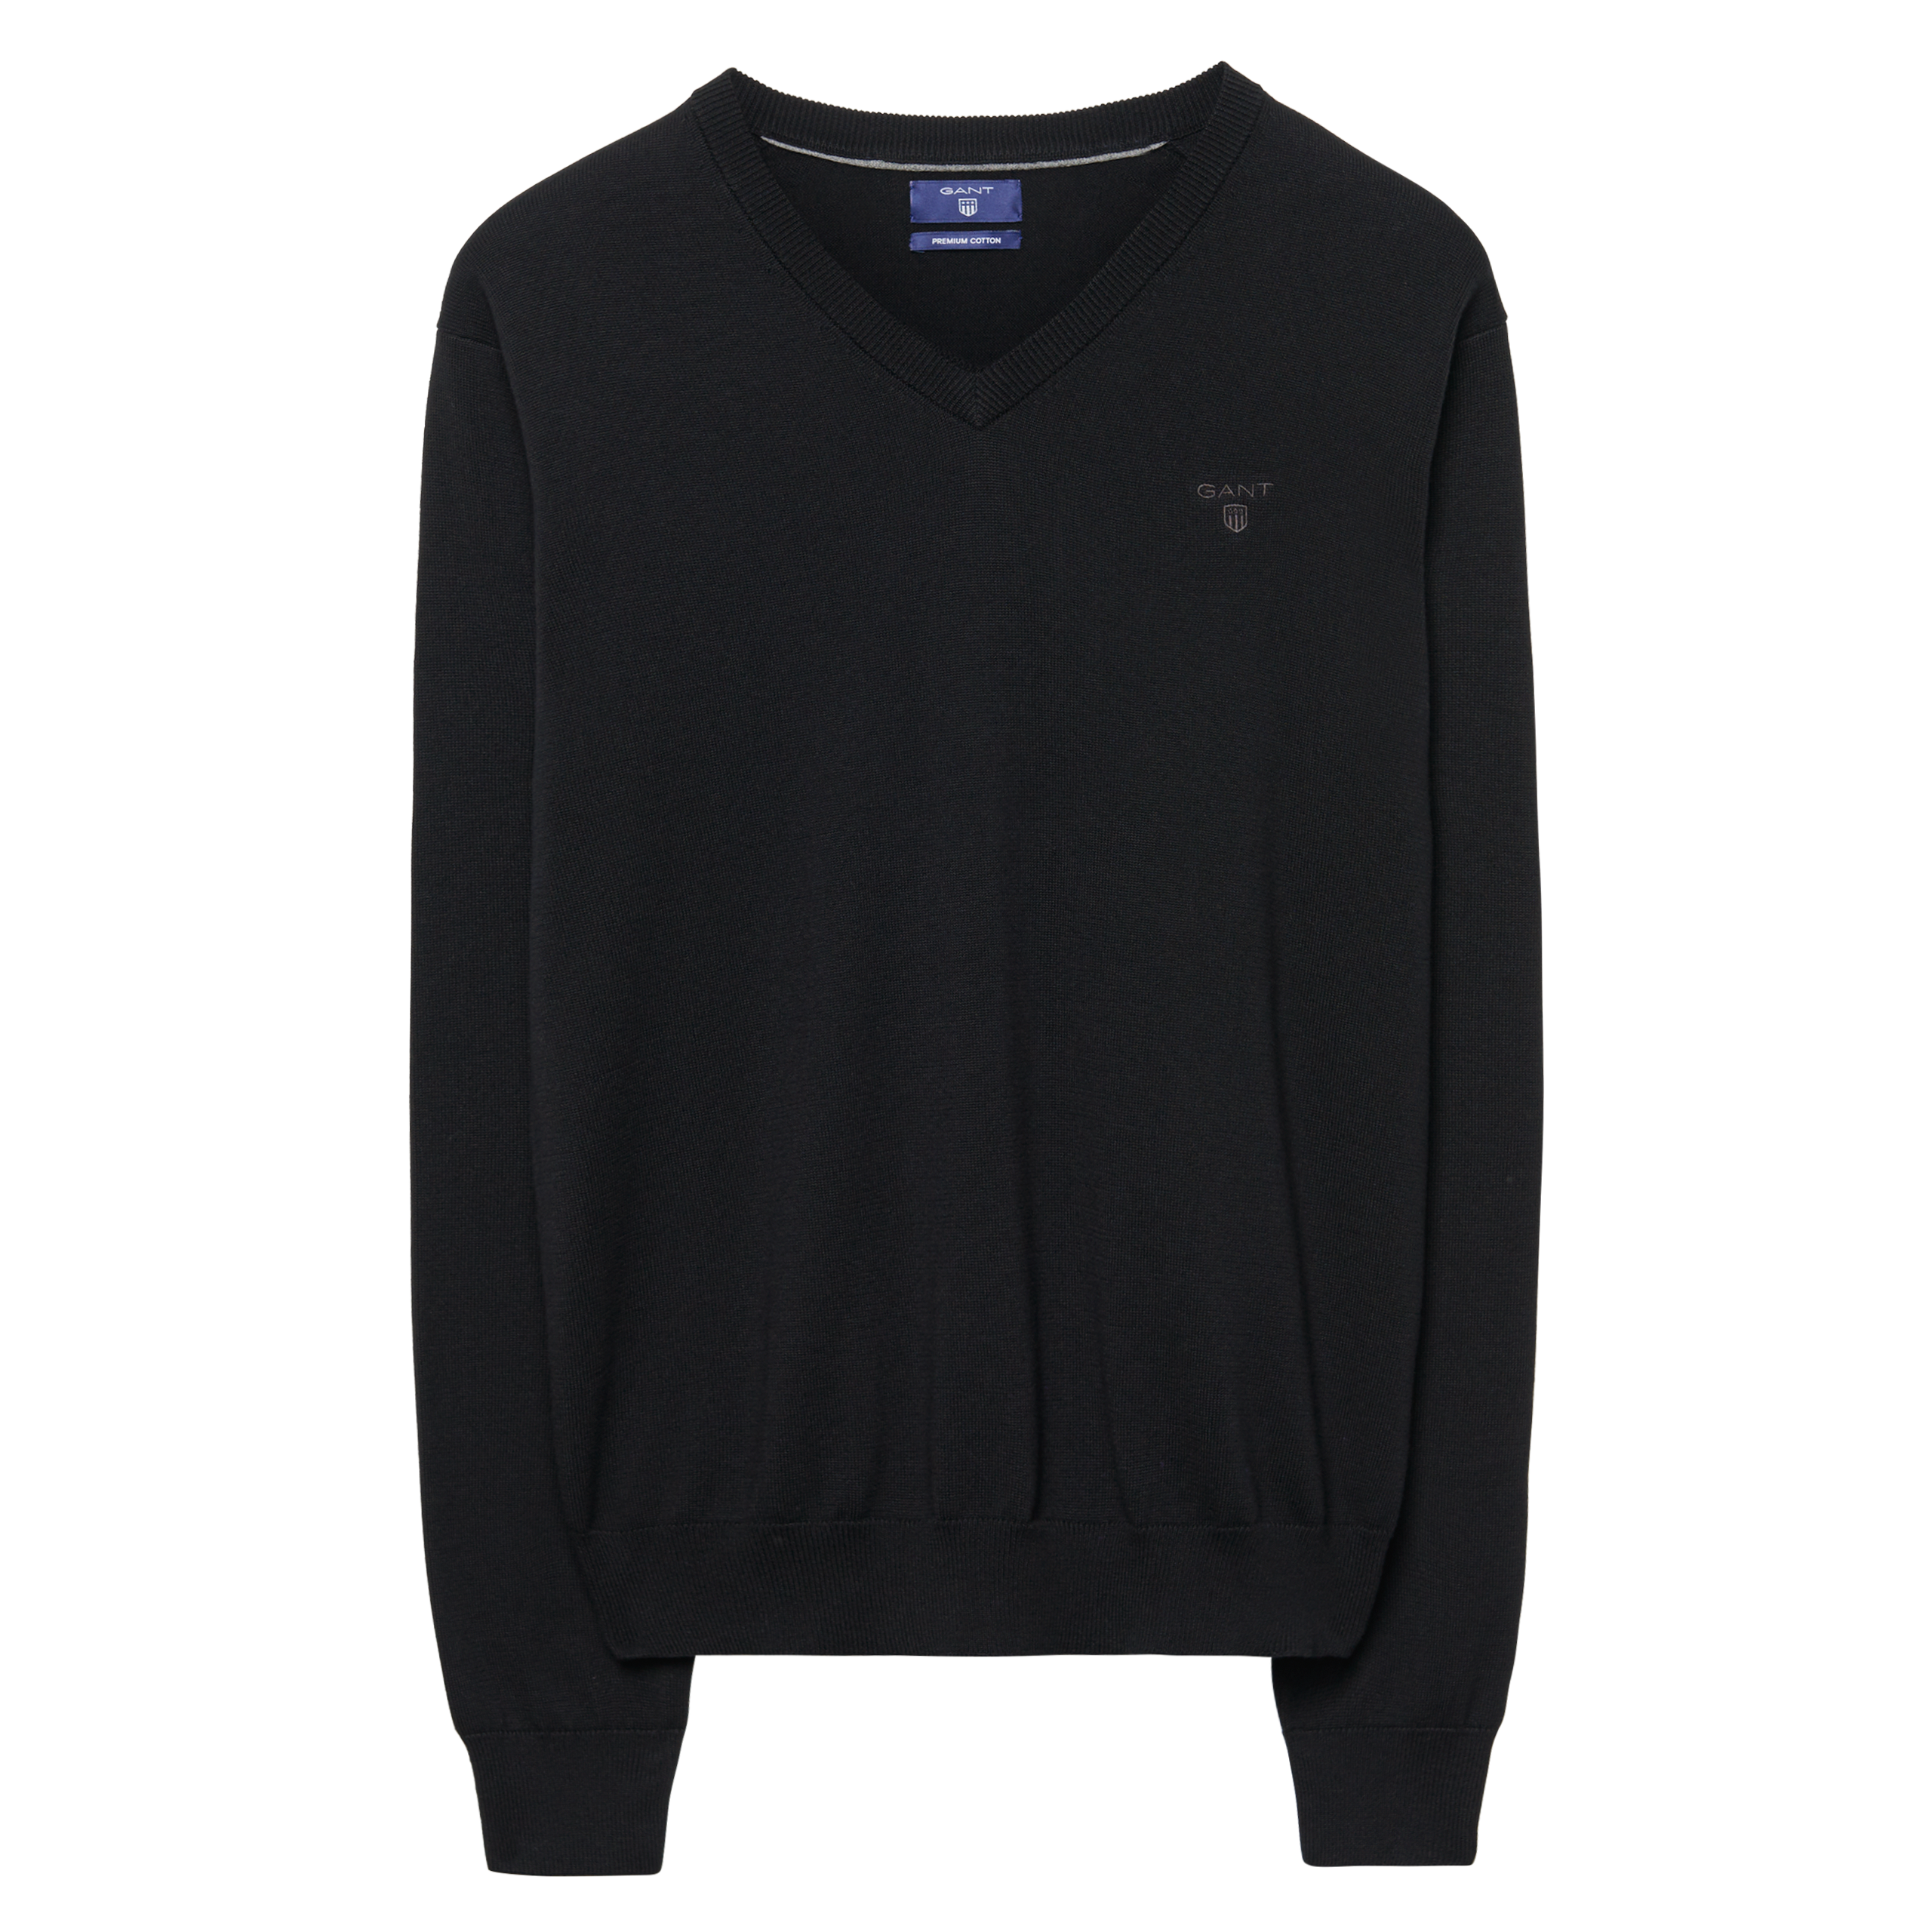 Gant Black Lt. Weight Cotton V-Neck